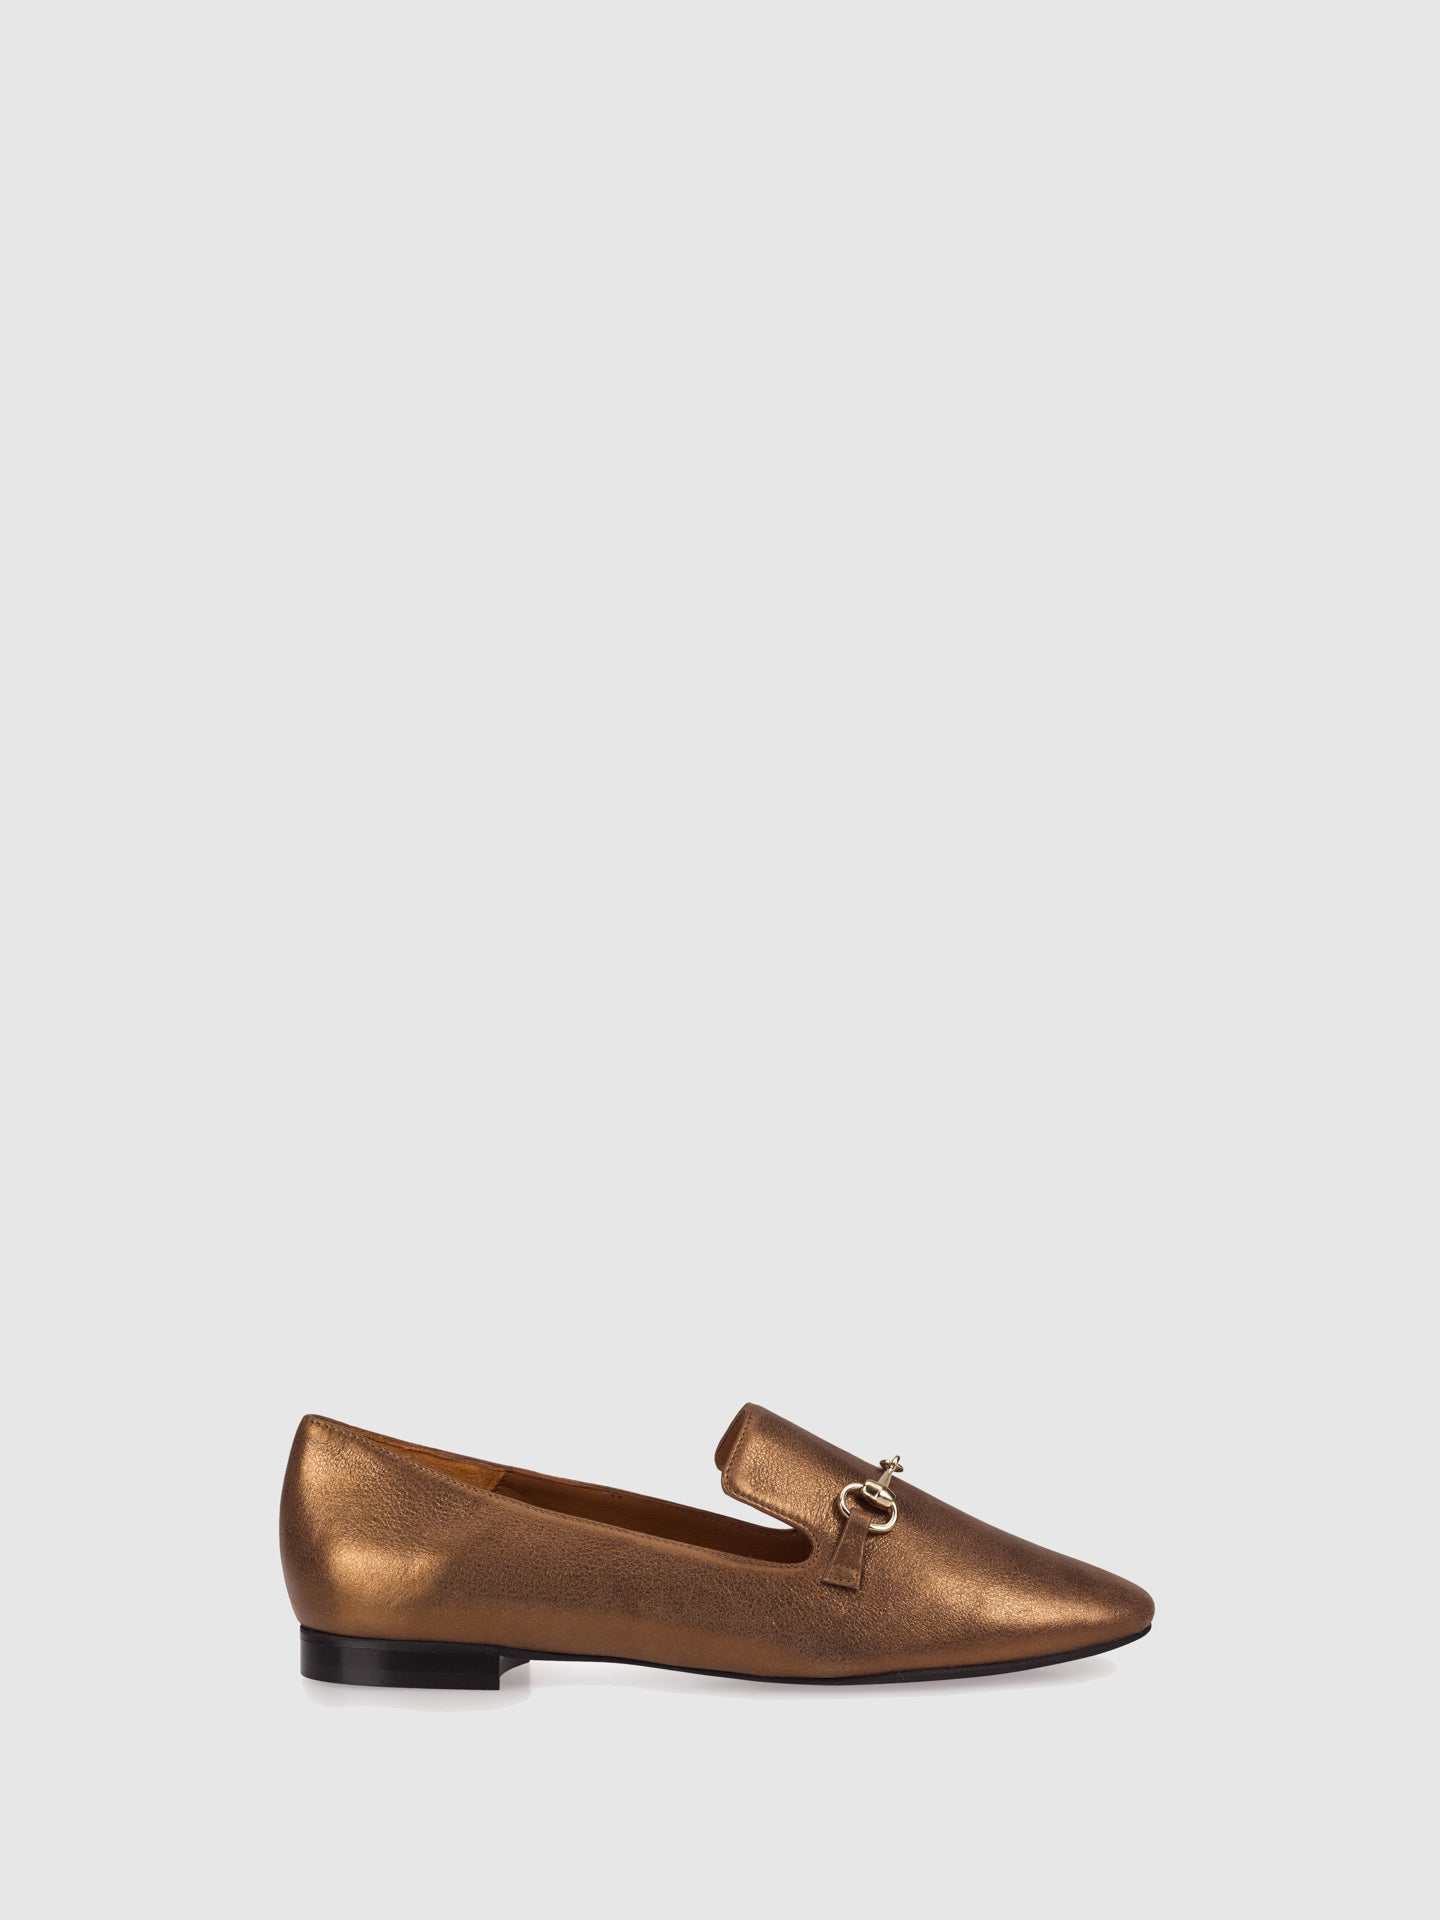 Palazzo VII Gold Loafers Shoes